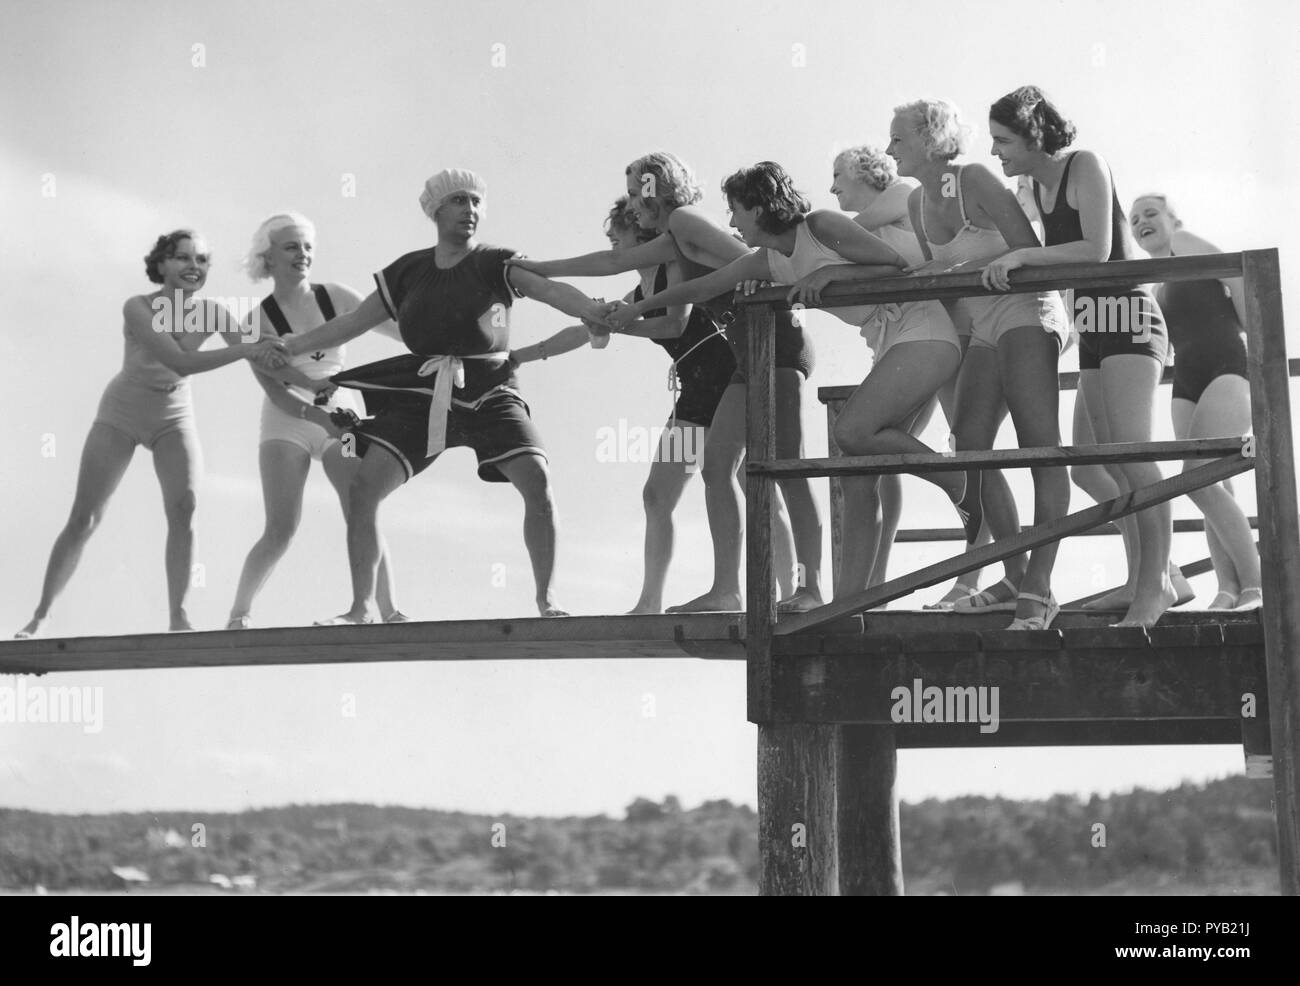 Having fun in the 1930s. Actor Nils Ericson in a bit of a situation when being torn from both sides. The women are wearing bathing suits and he looks as if he does to in an odd design. At a filmset from unknown swedish film from the 1930s. - Stock Image